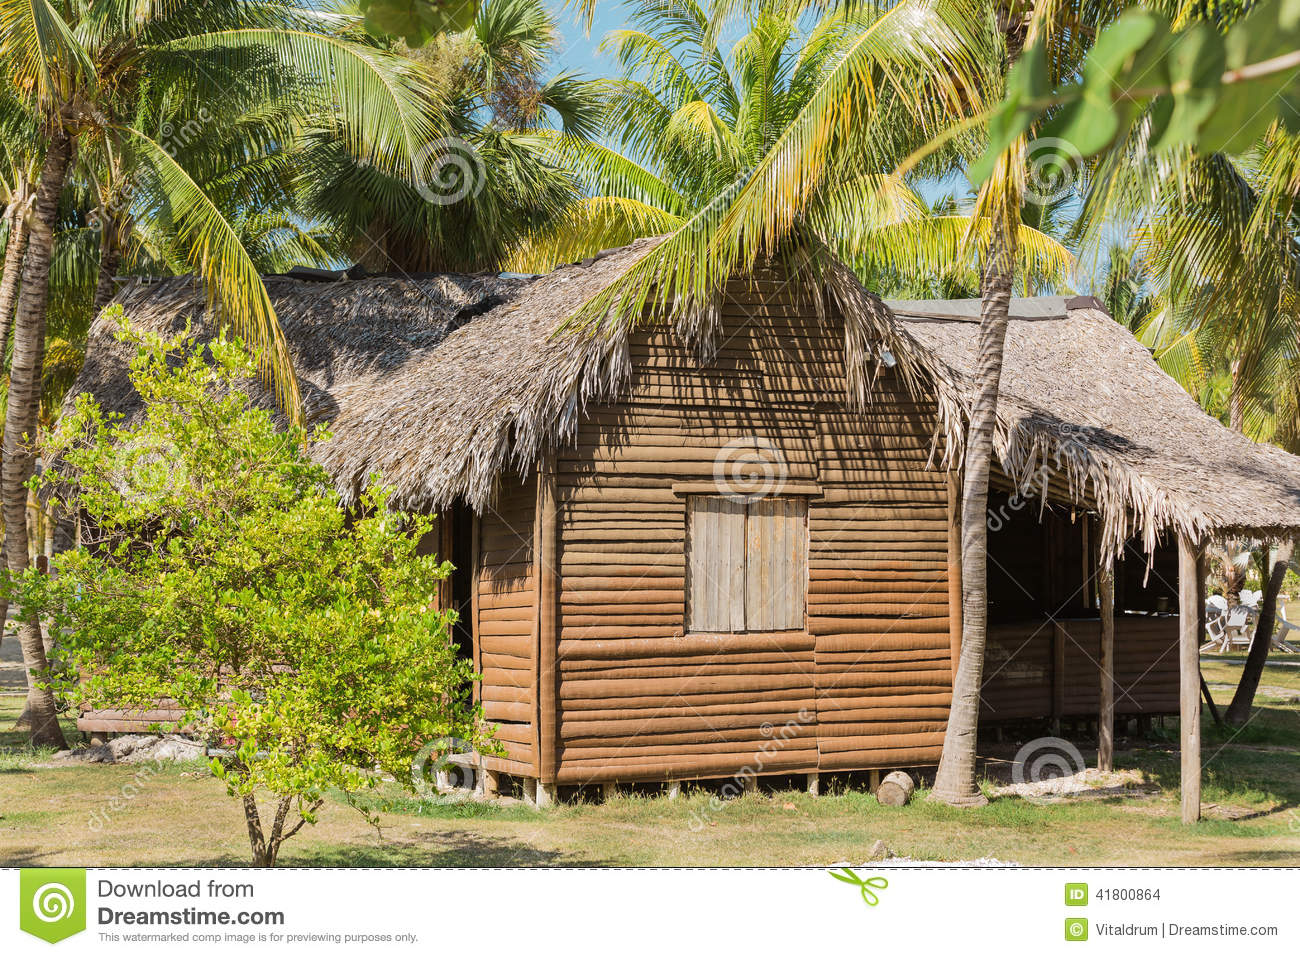 Great view of abandoned old house in tropical garden stock photo image 41800864 - Wooden vacation houses nature style ...